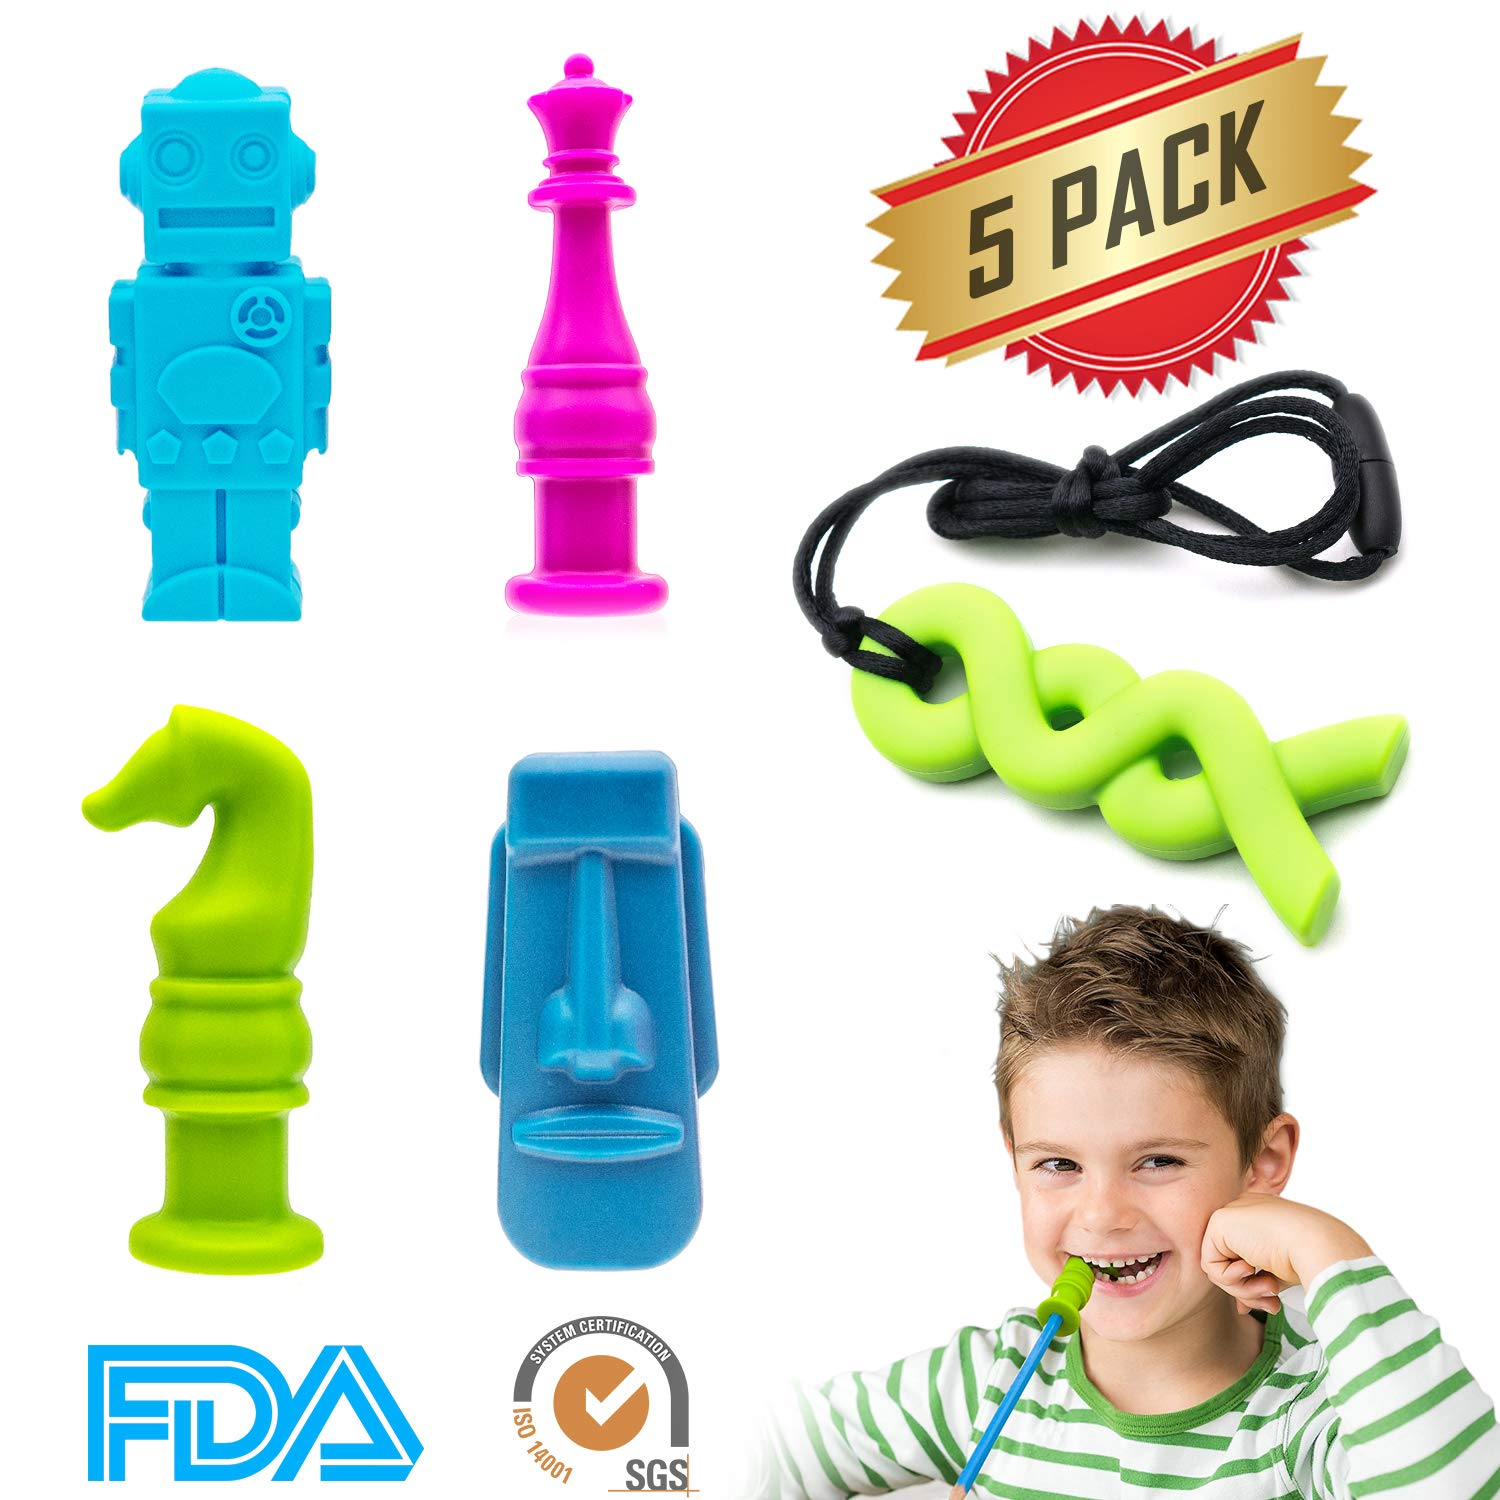 ELifeBox 5 PCS Sensory Chew Necklace/Pencil Topper Set, FDA-approved Silicone Chew Toys for Autism, Biting, Teething, ADHD, SPD, Oral Motor Children, Kids, Boys, and Girls